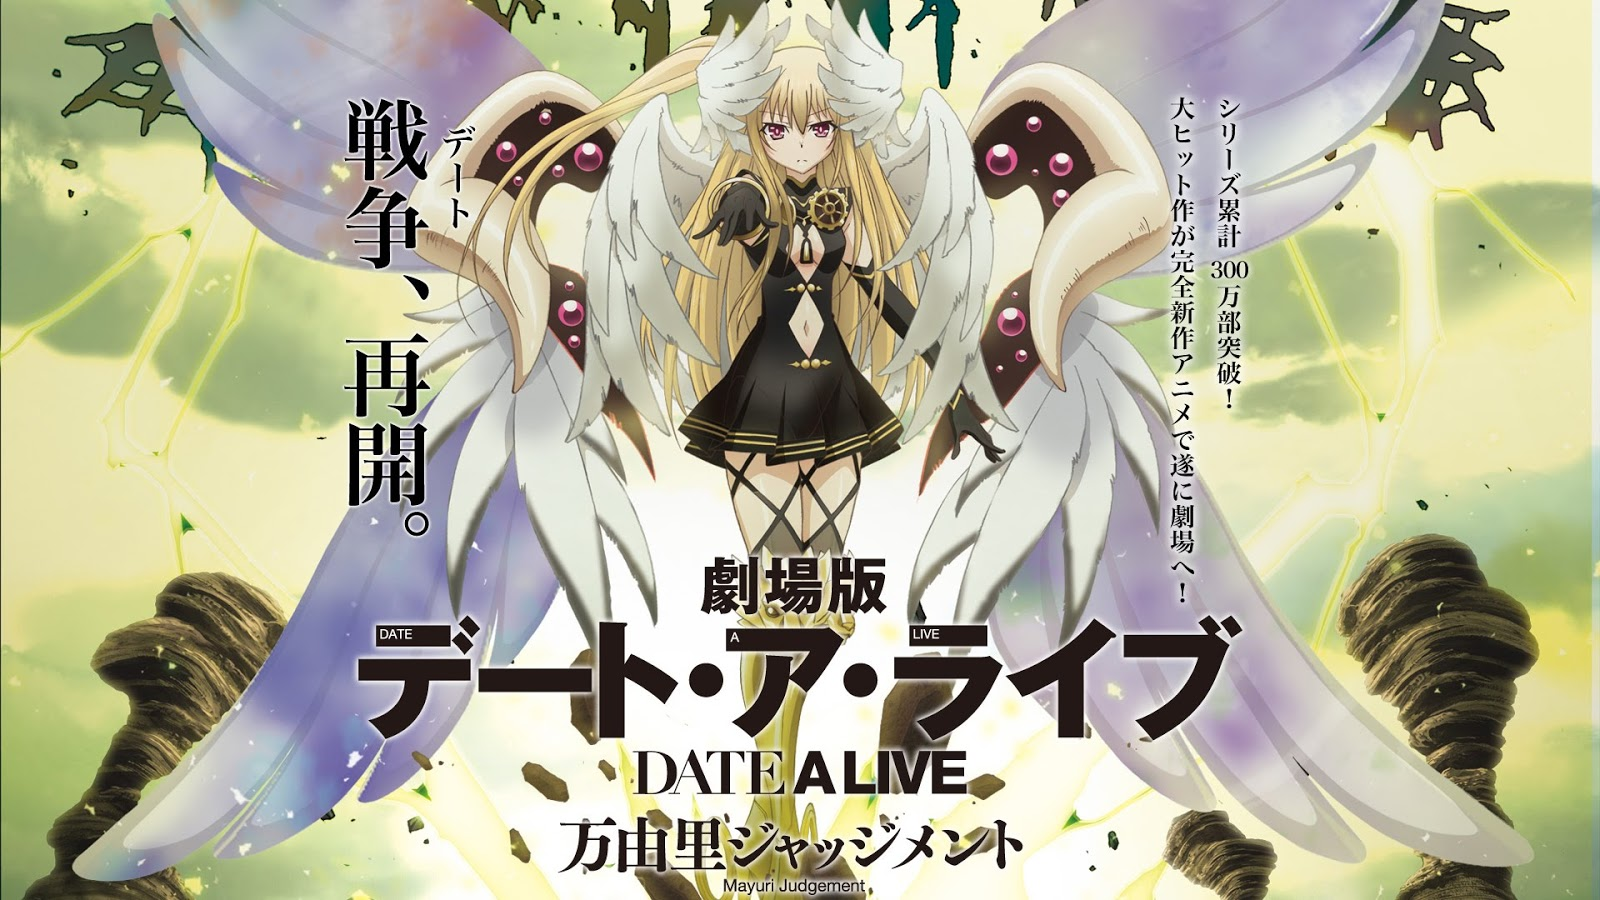 Download Date A Live Mayuri Judgment [Movie] Sub Indo